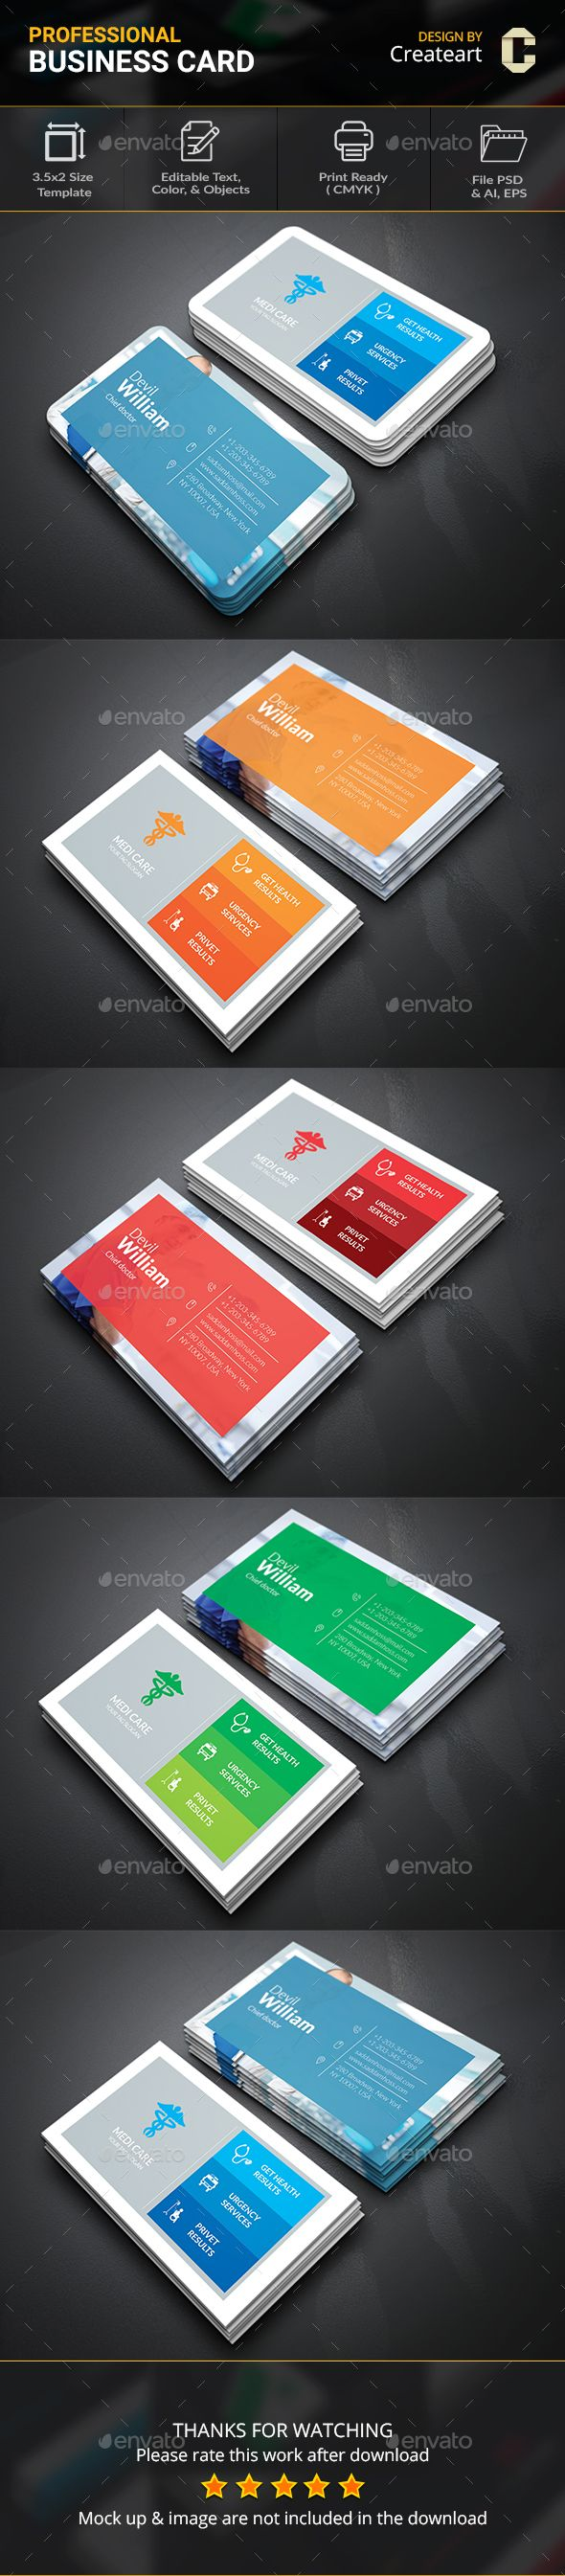 Medical Doctor Business Card  Medical Doctor Card Printing And